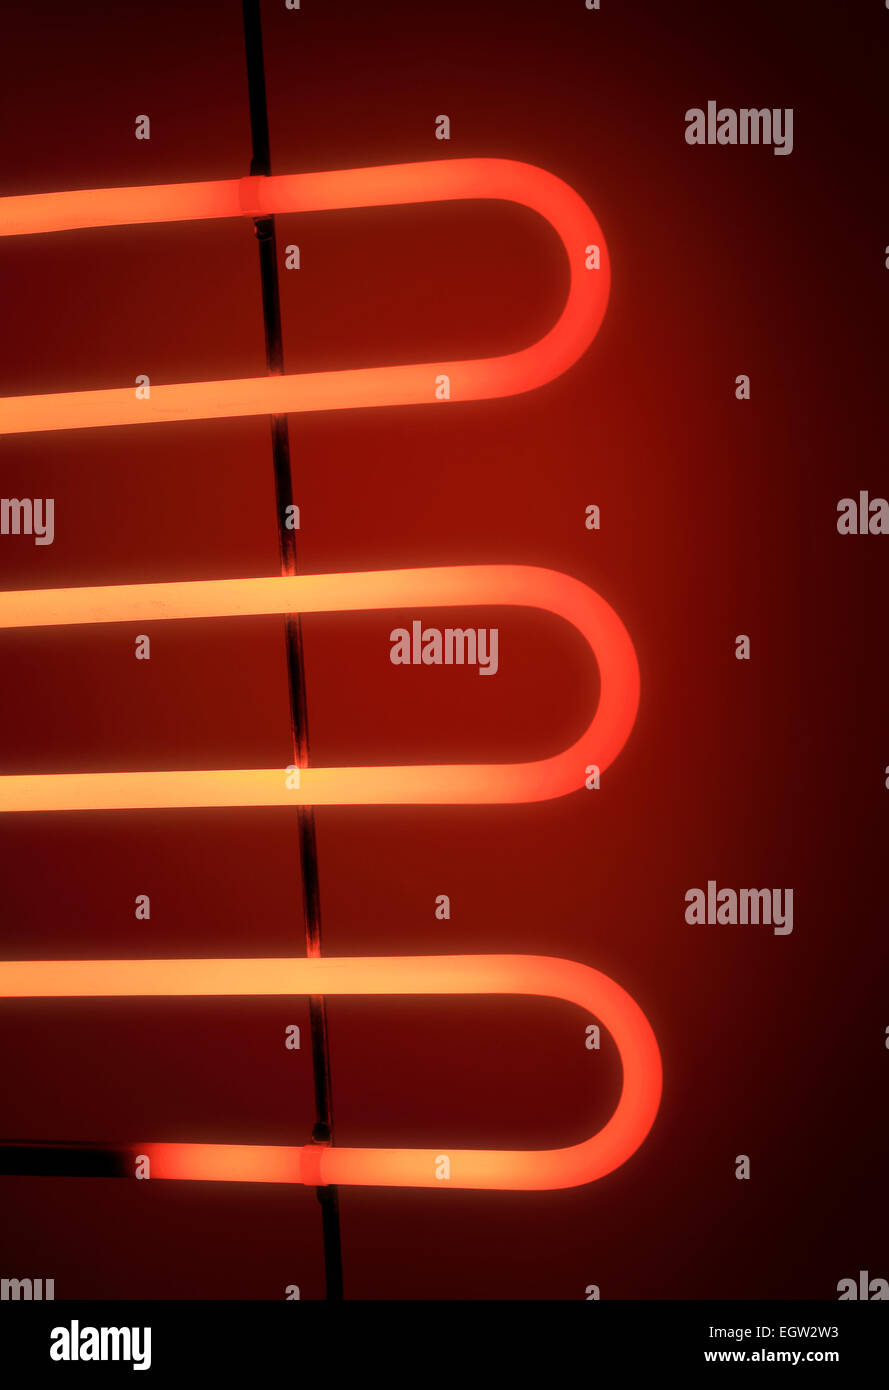 Electrical heating element of an electrical barbeque grill glowing in the dark. - Stock Image